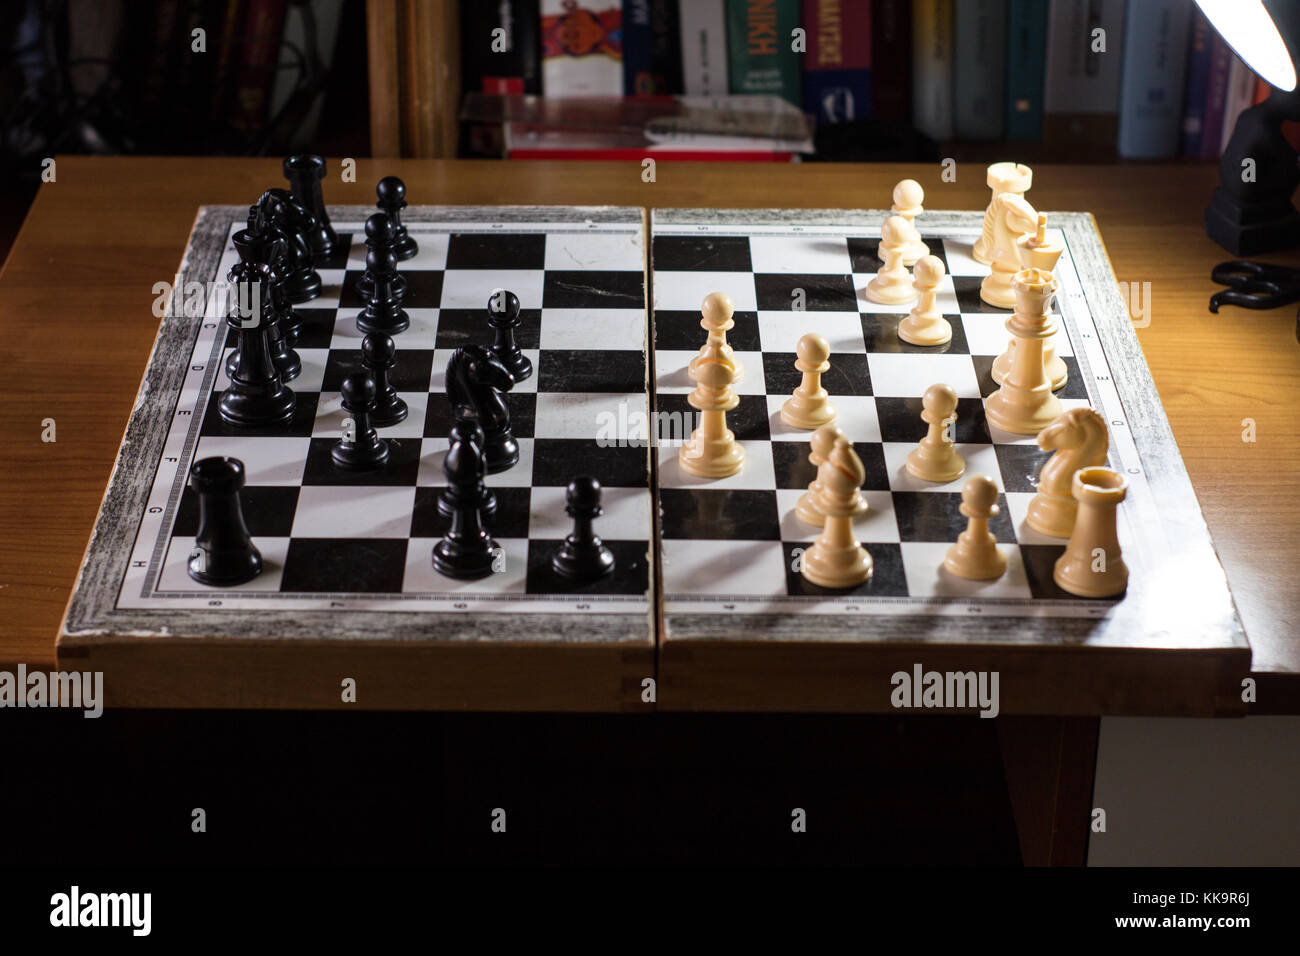 chess board from the side with multiple moves made game - Stock Image